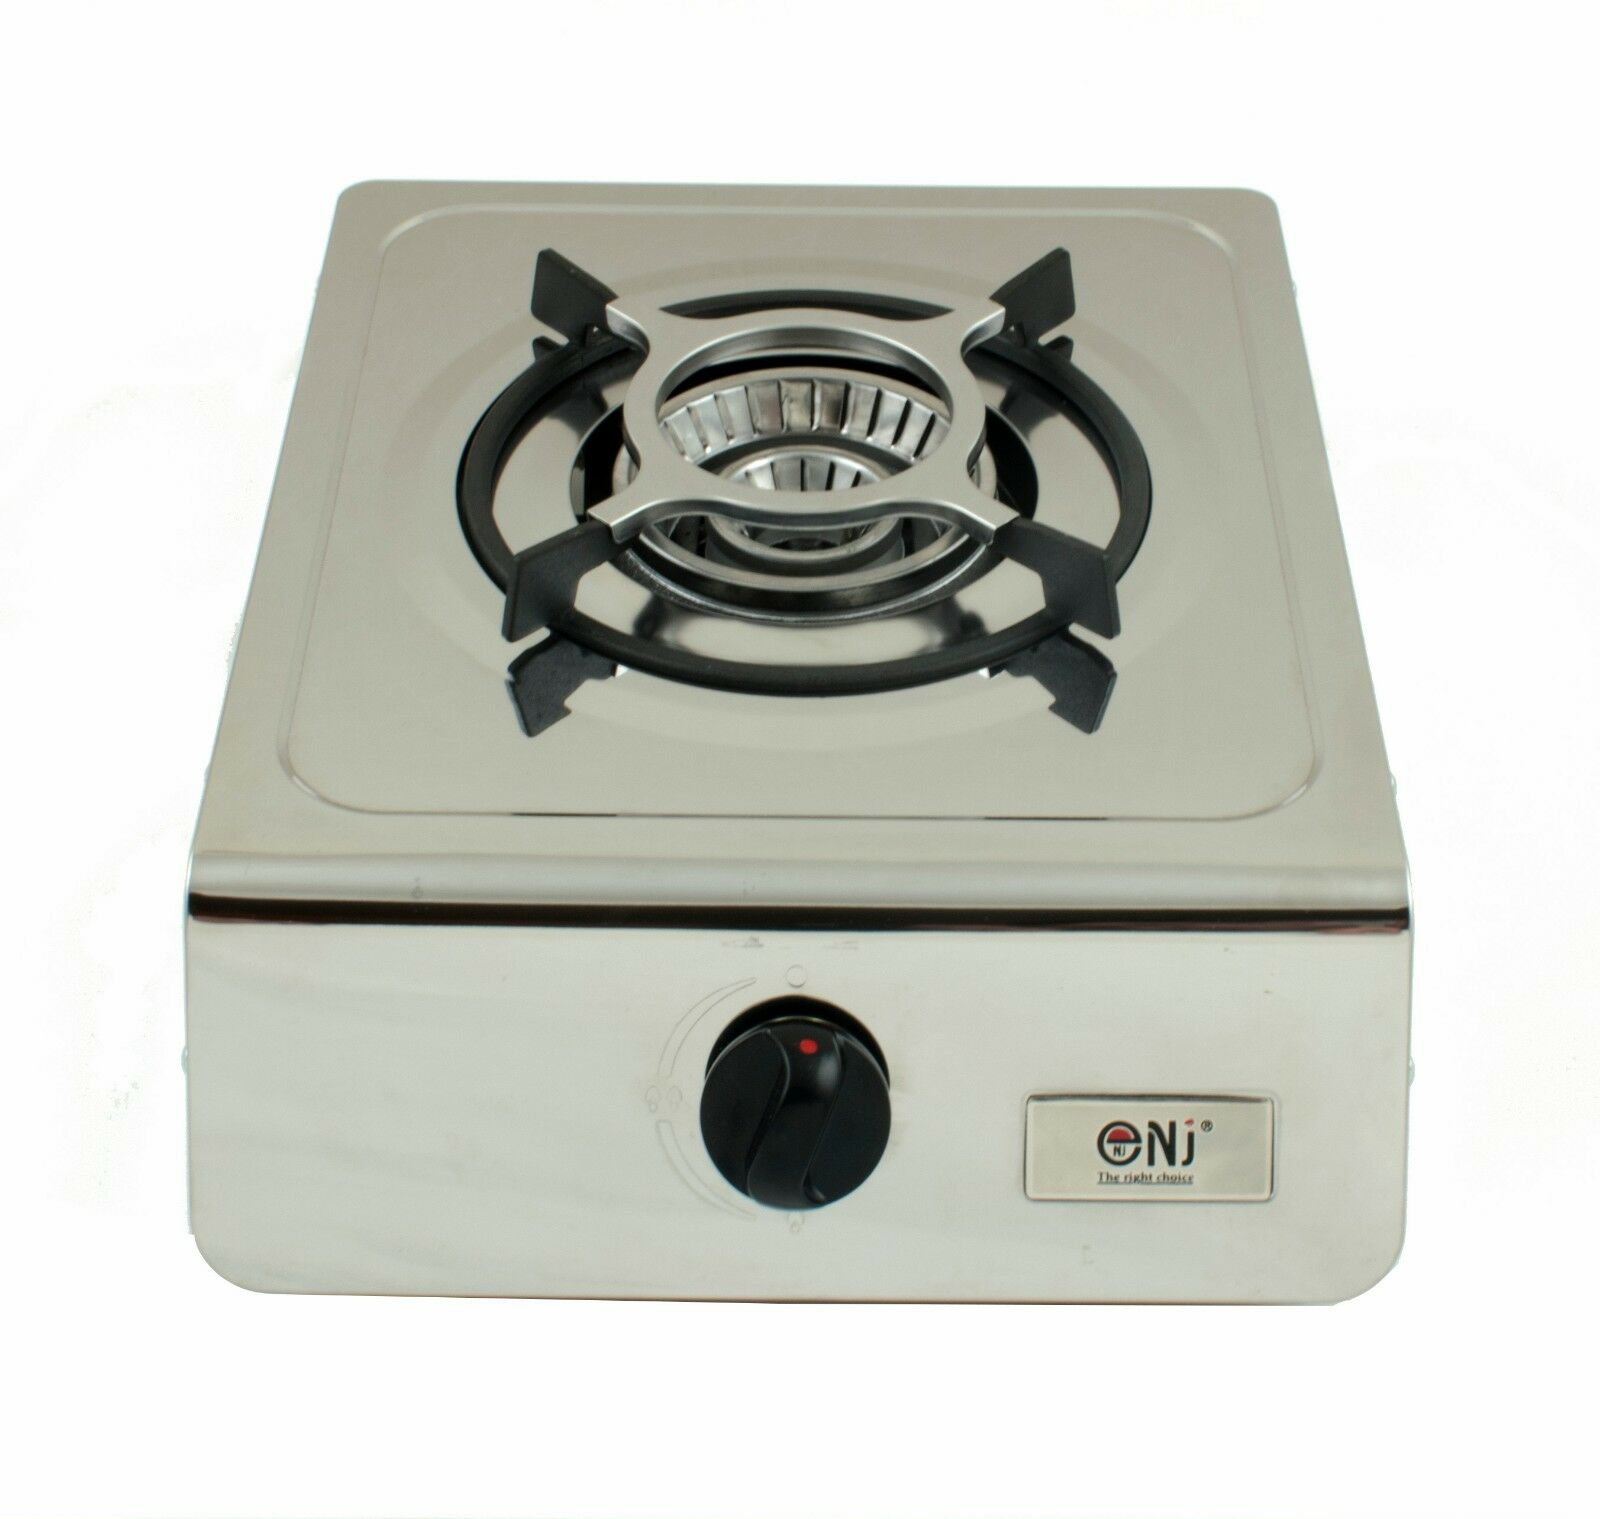 NJ-100 Portable Gas Stove 1 Burner Cooker Stainless Steel Camping 4.0kW